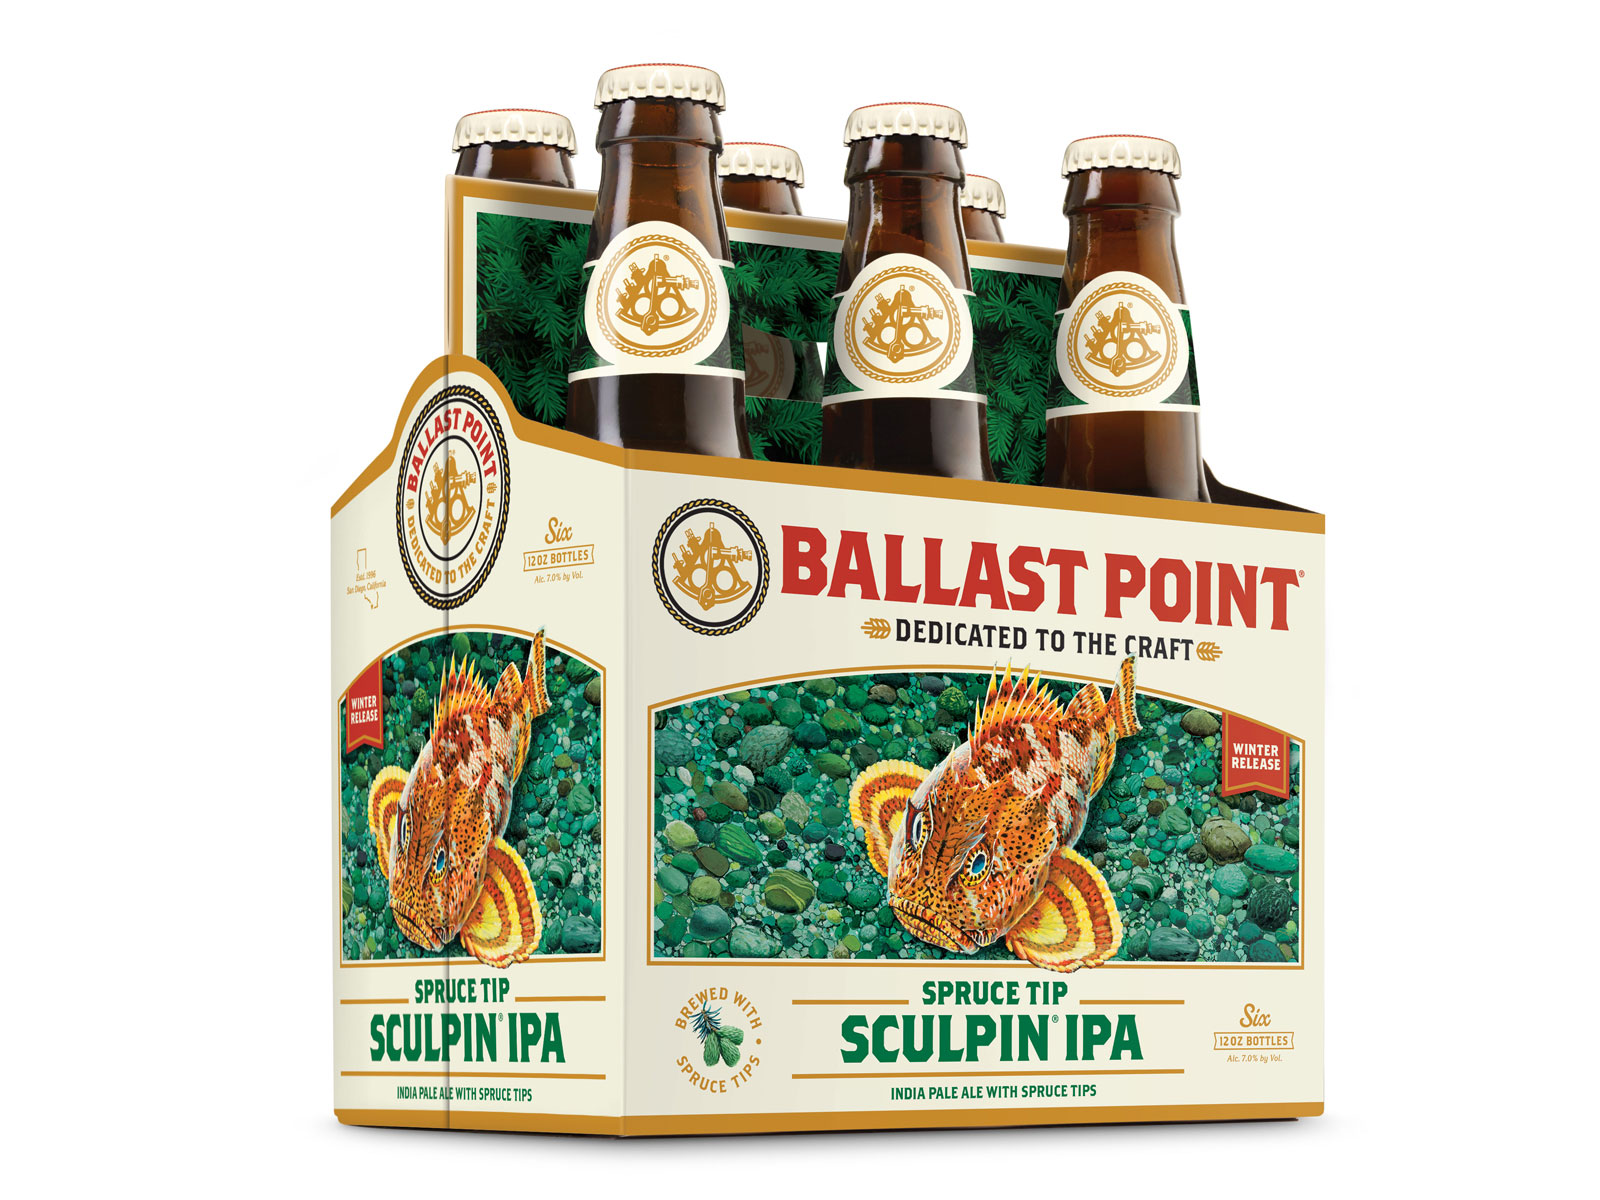 Ballast Point - Spruce Tip Sculpin IPA